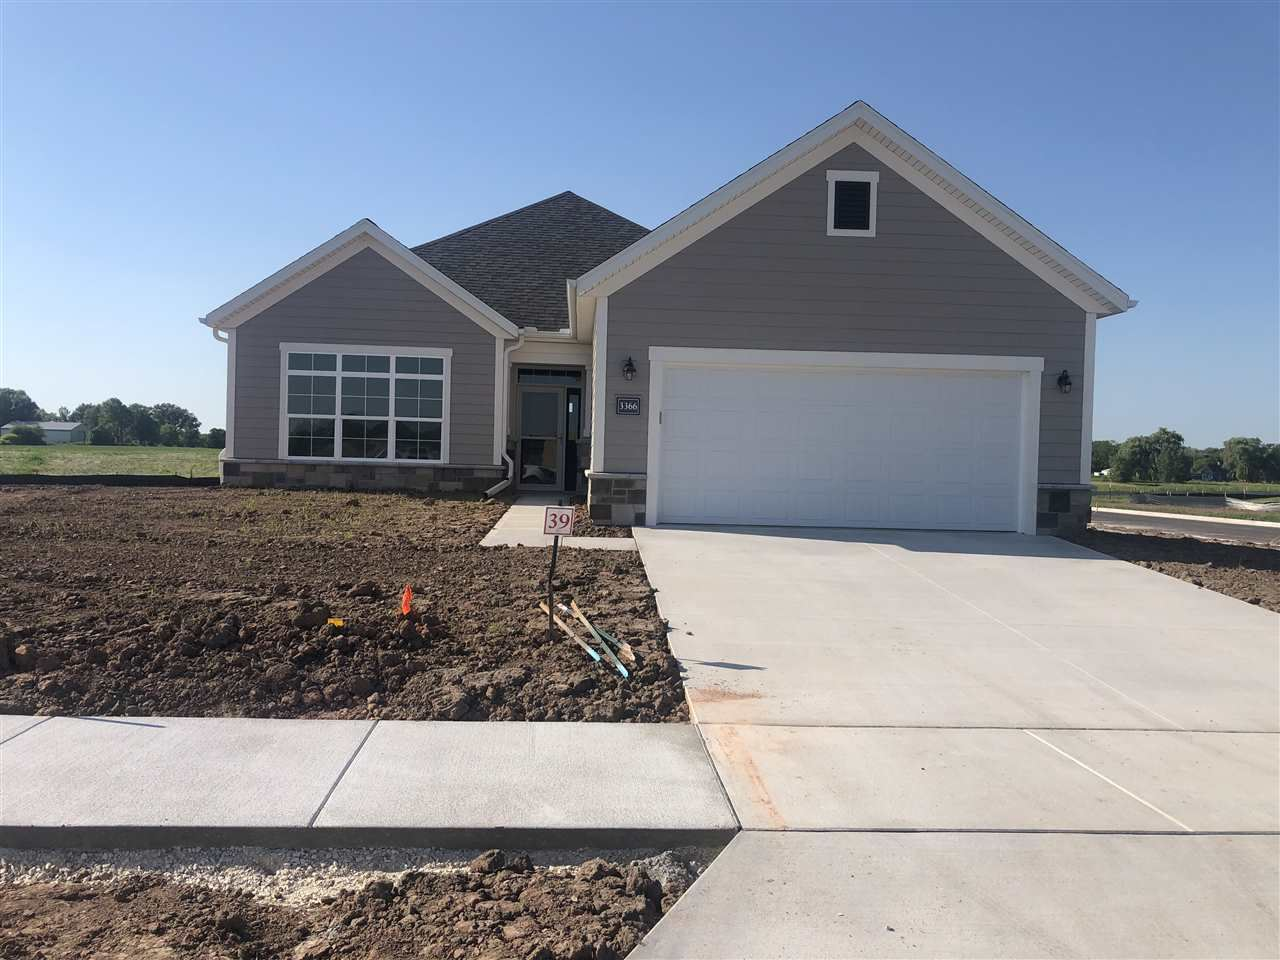 3366 LIBRA Court, Green Bay, WI 54311 - MLS#: 50220930